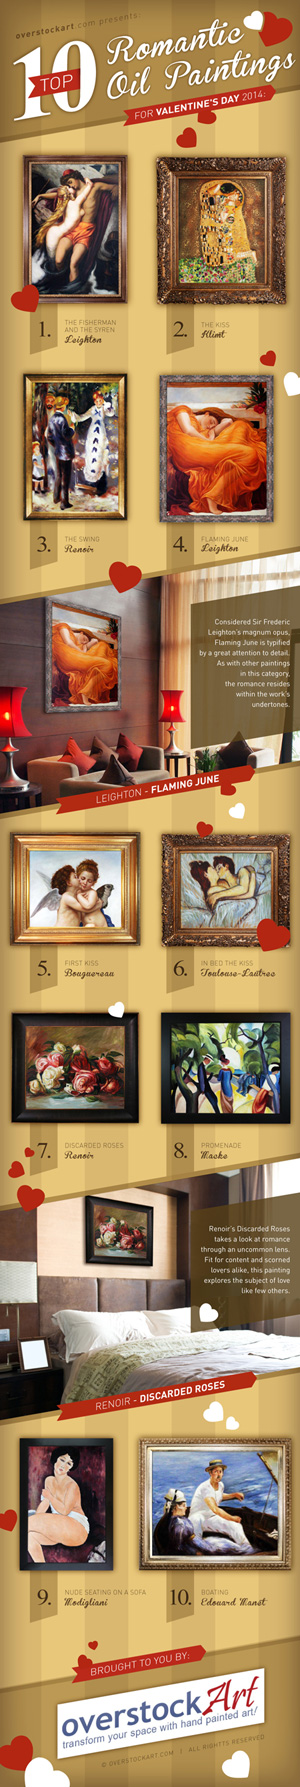 Top 10 Most Romantic Oil Painting for Valentine's Day 2014